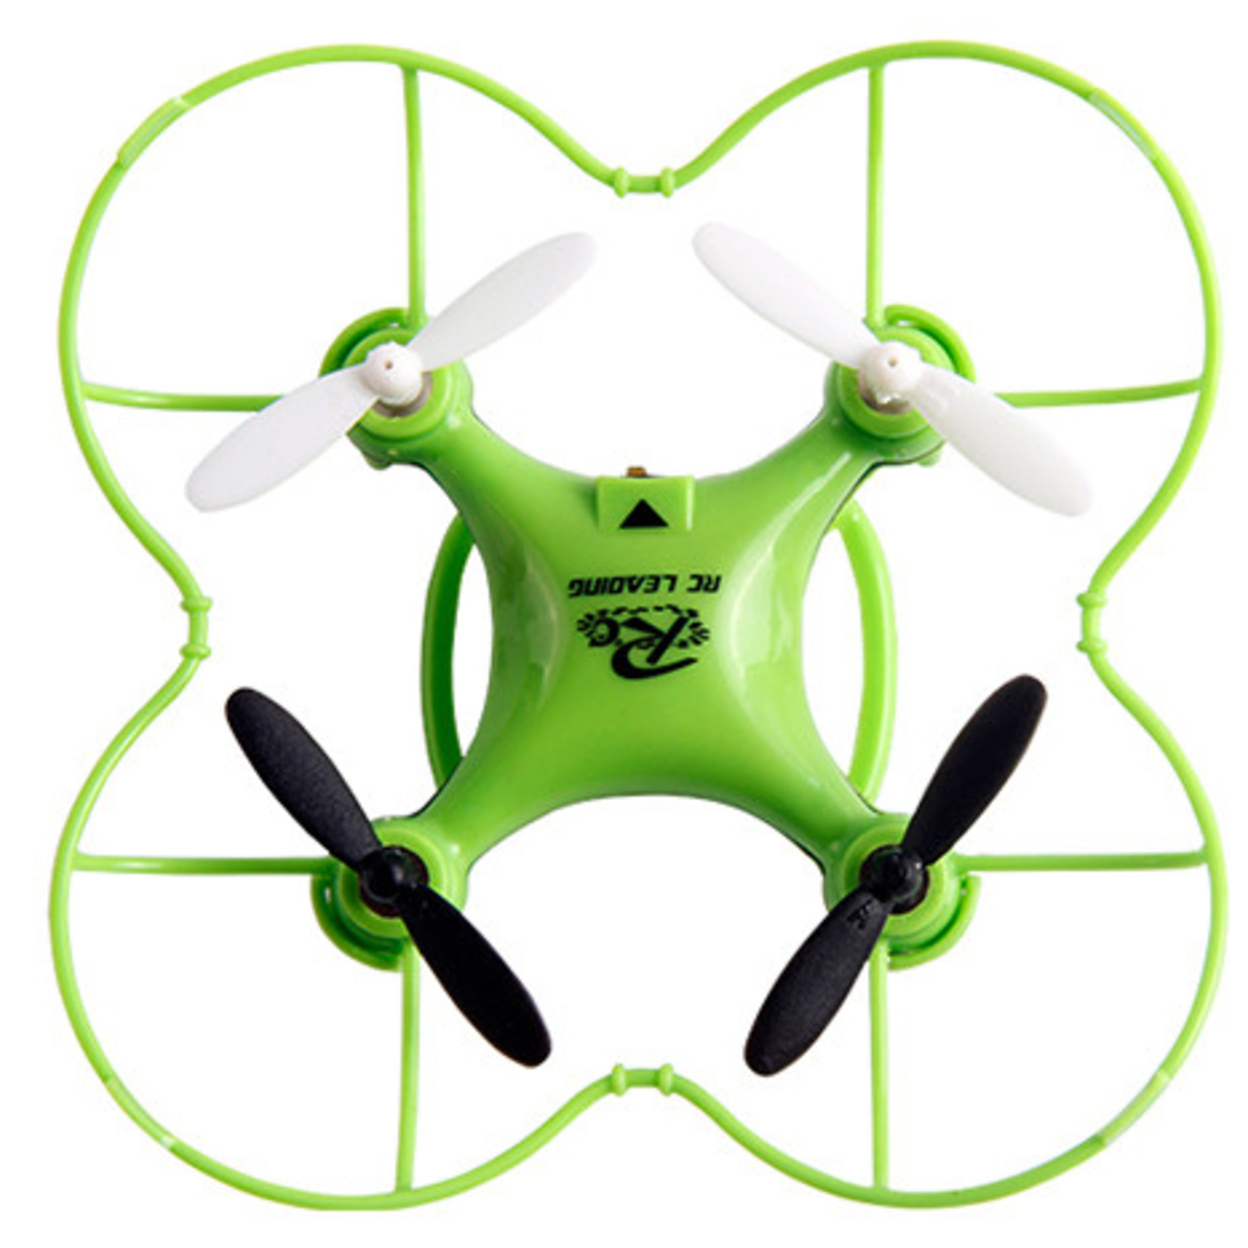 Rc101 Drone 2.4g 4ch 6-axis Mini Rc Gyro Aircraft Without Camera